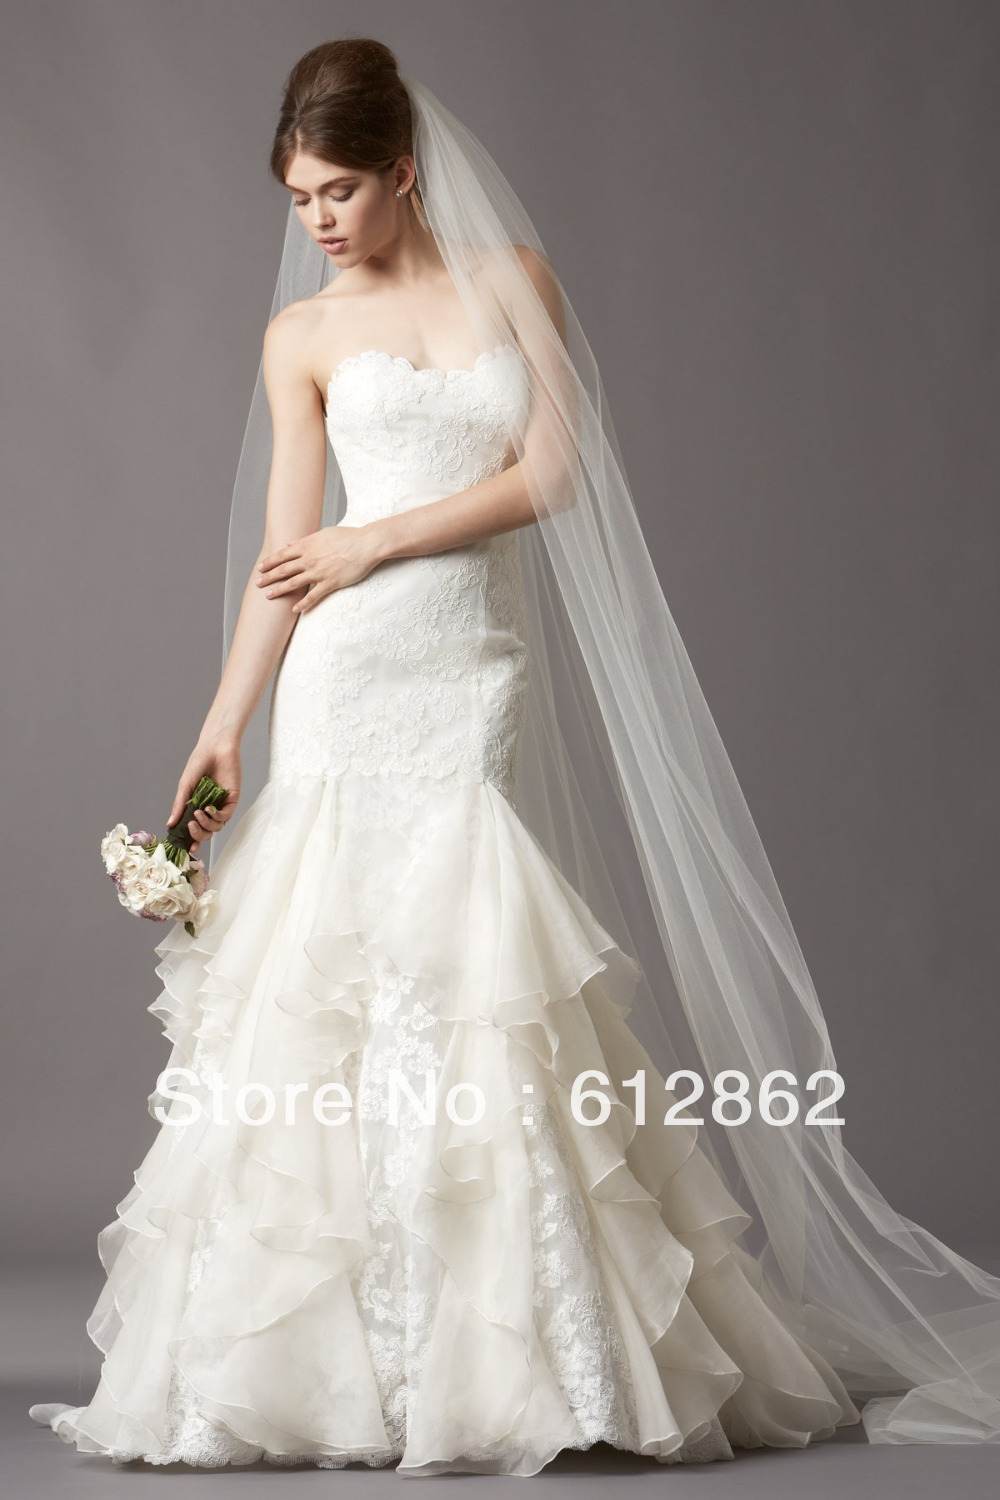 Elegant Strapless Low Back Organza And Lace Long Tail Mermaid Wedding Dress In Dresses From Weddings Events On Aliexpress